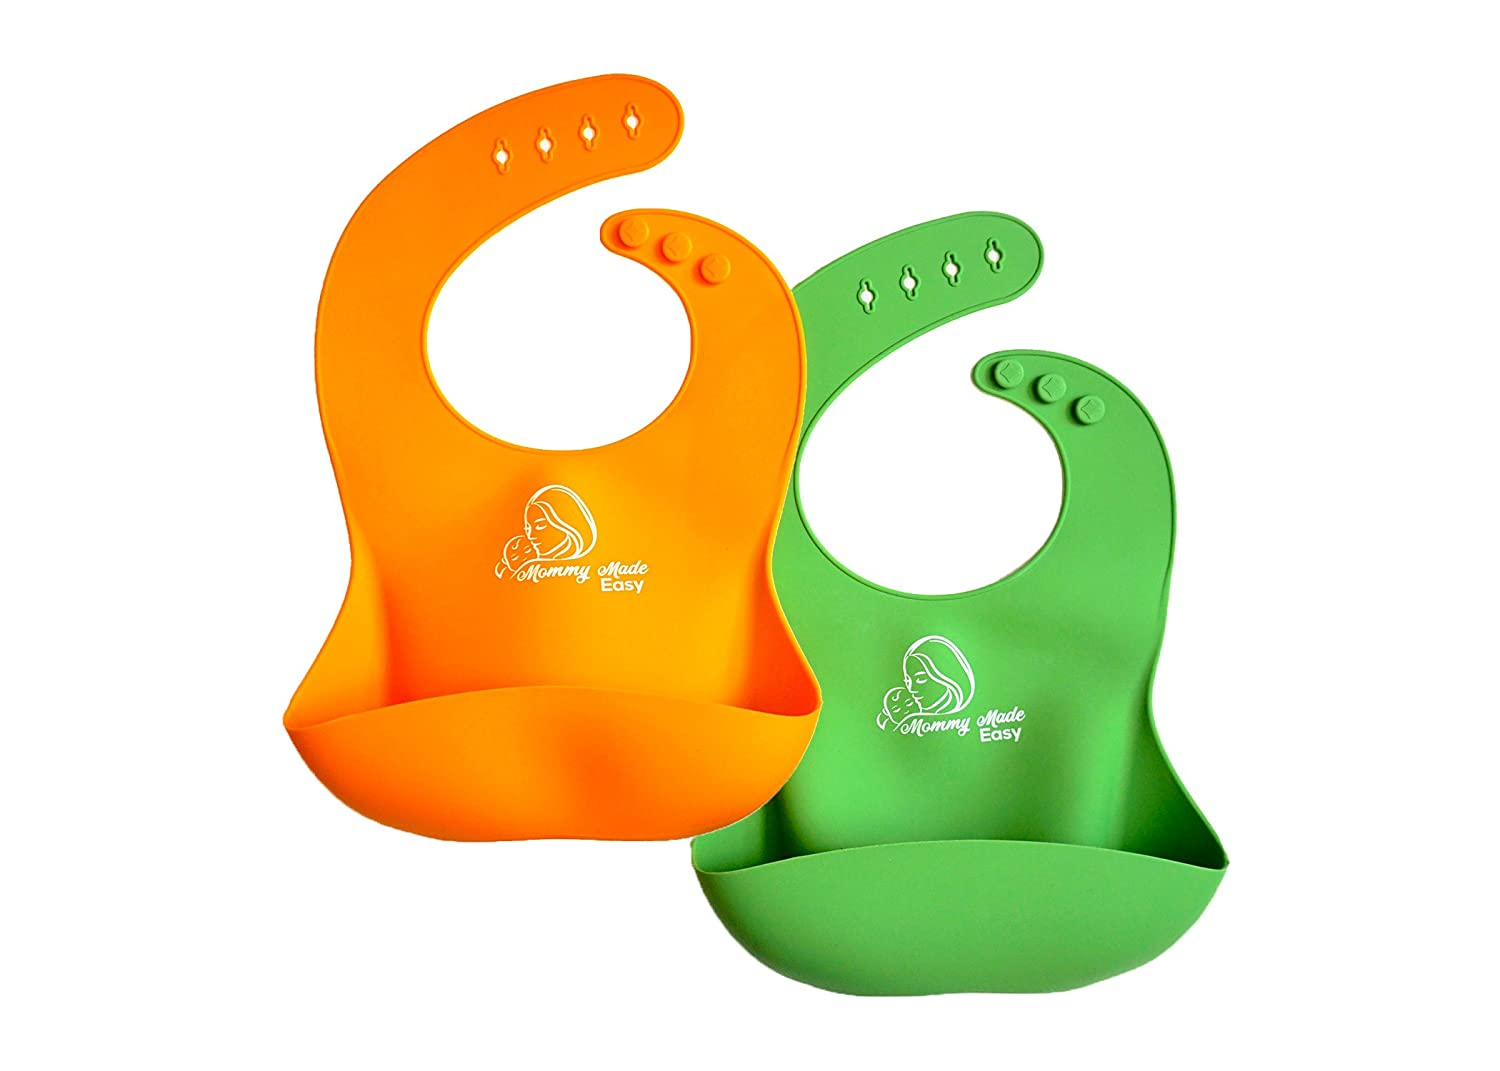 Waterproof Silicone Baby Bib Spend Less Time Cleaning Up After Your Kids No More Stains, Easy To Wash!